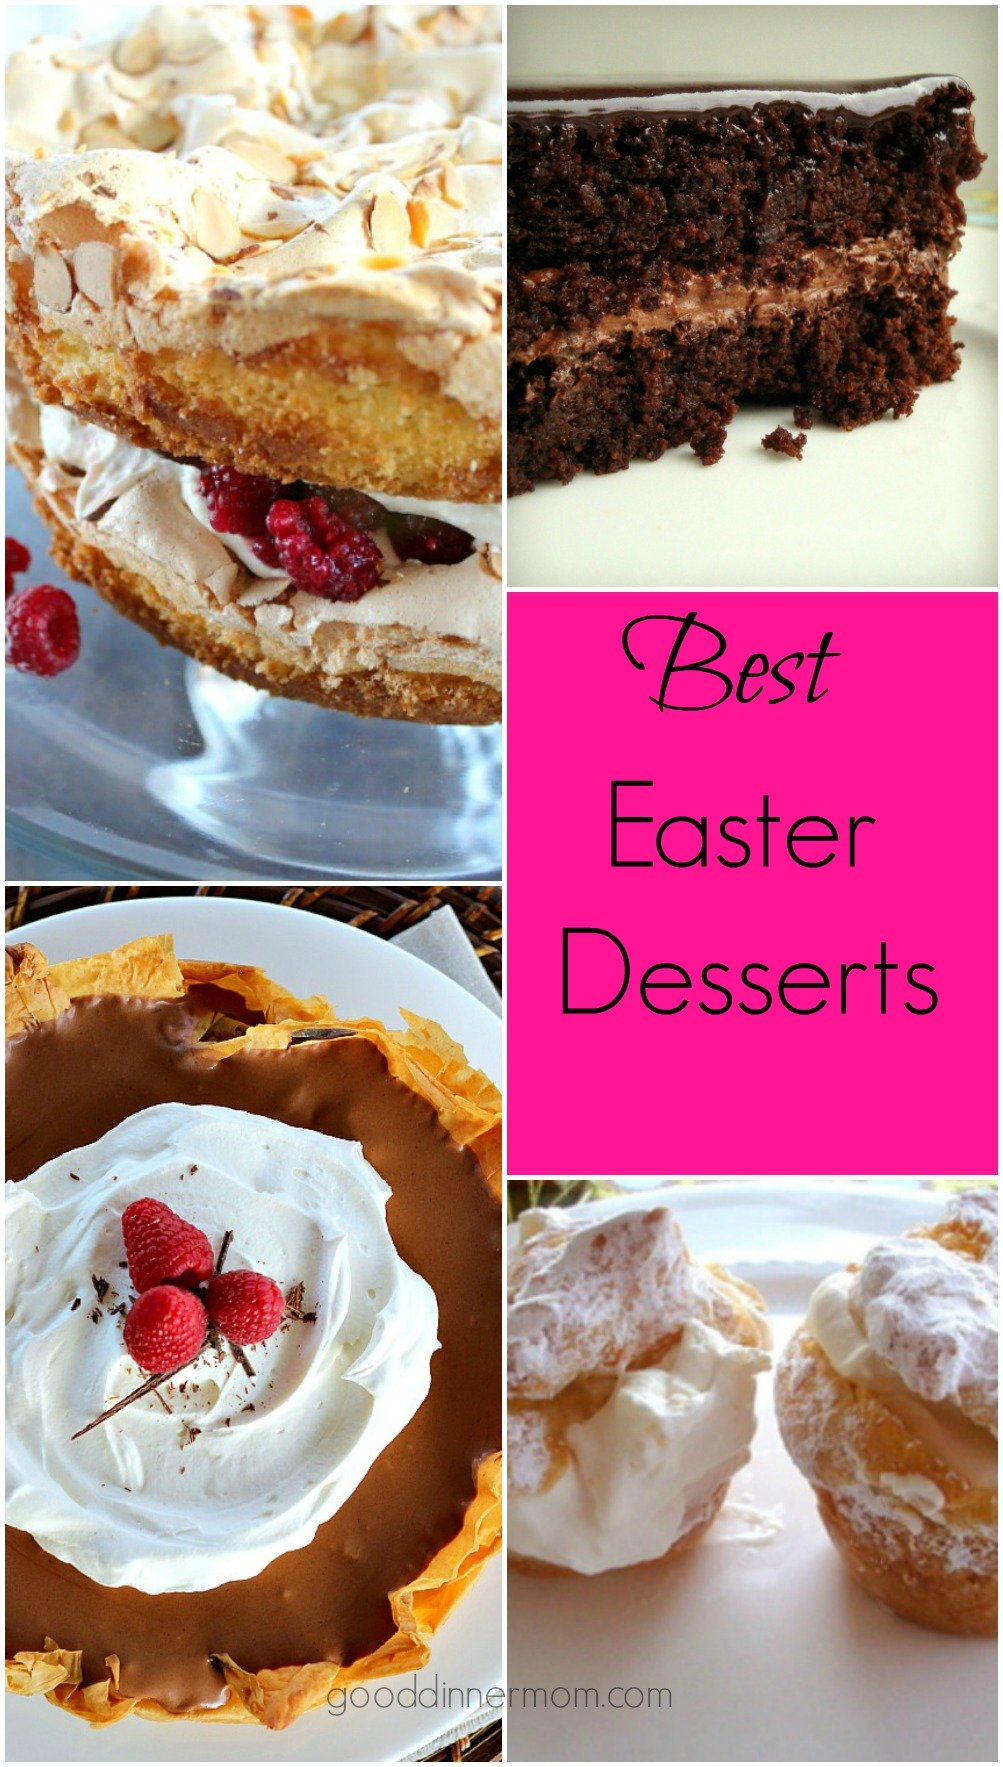 Here's a list of Easter Desserts to please everyone!